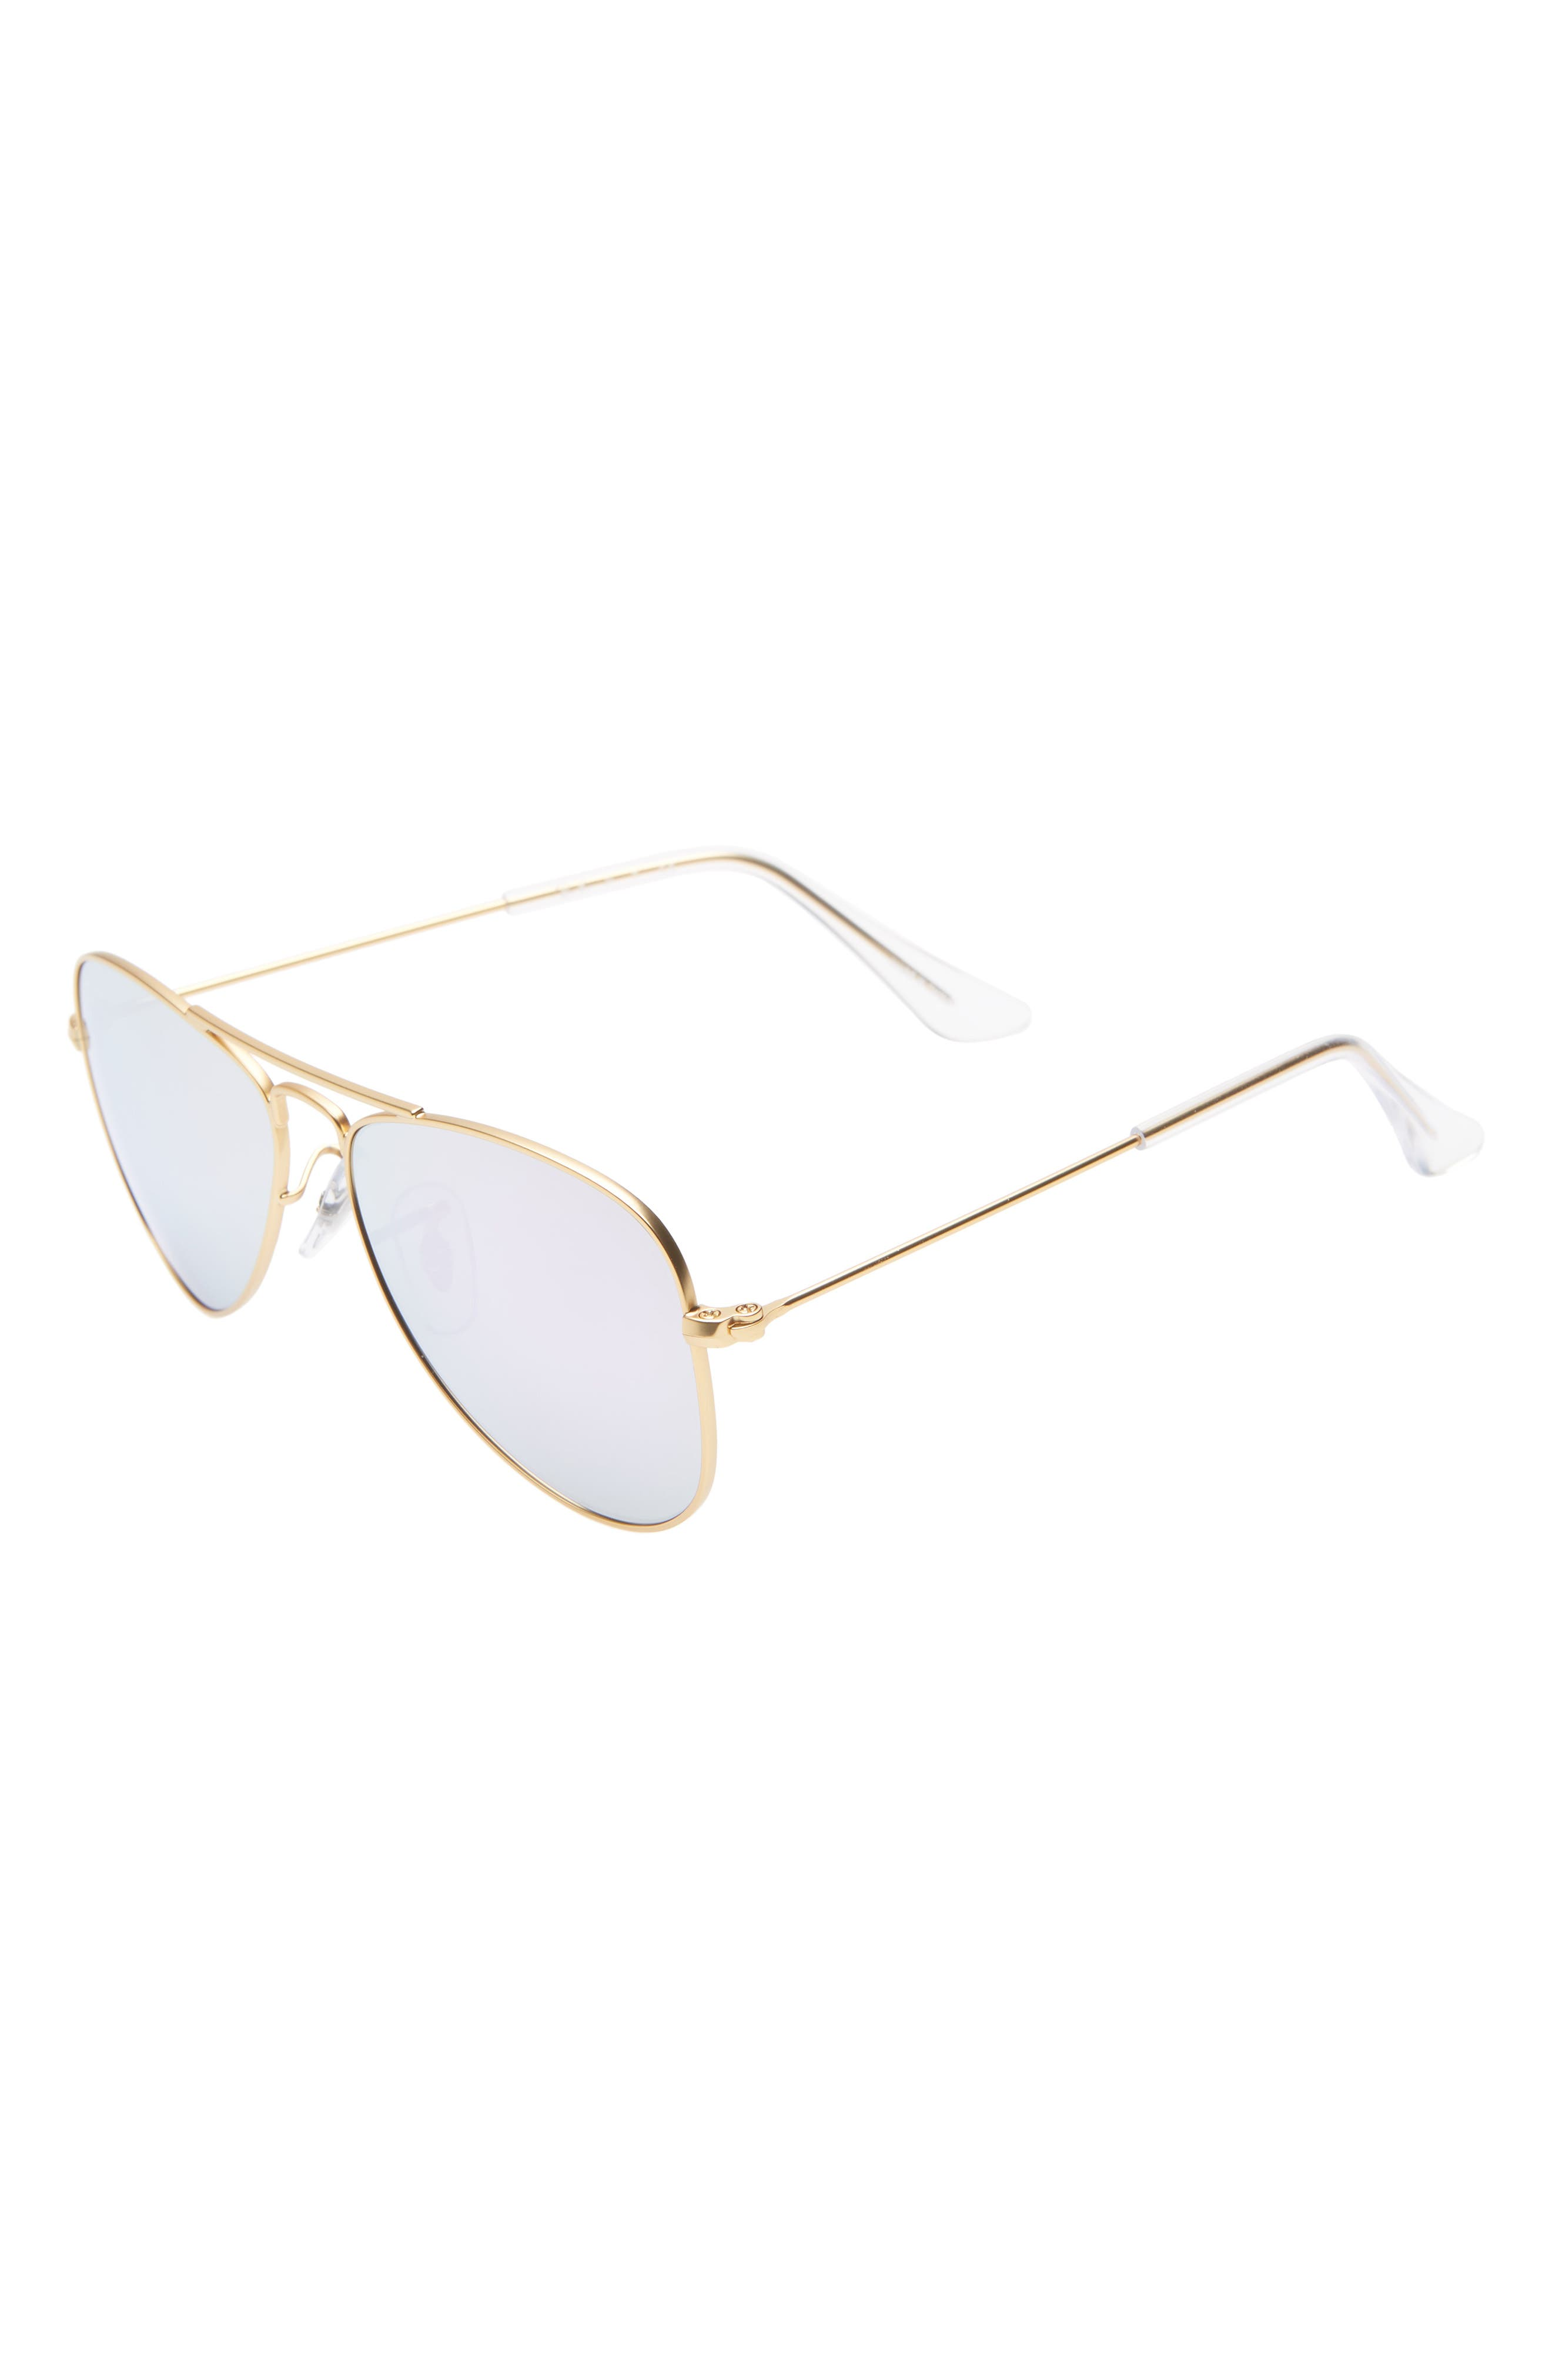 Ray-Ban Junior 50Mm Mirrored Aviator Sunglasses - Gold/ Lilac Mirror